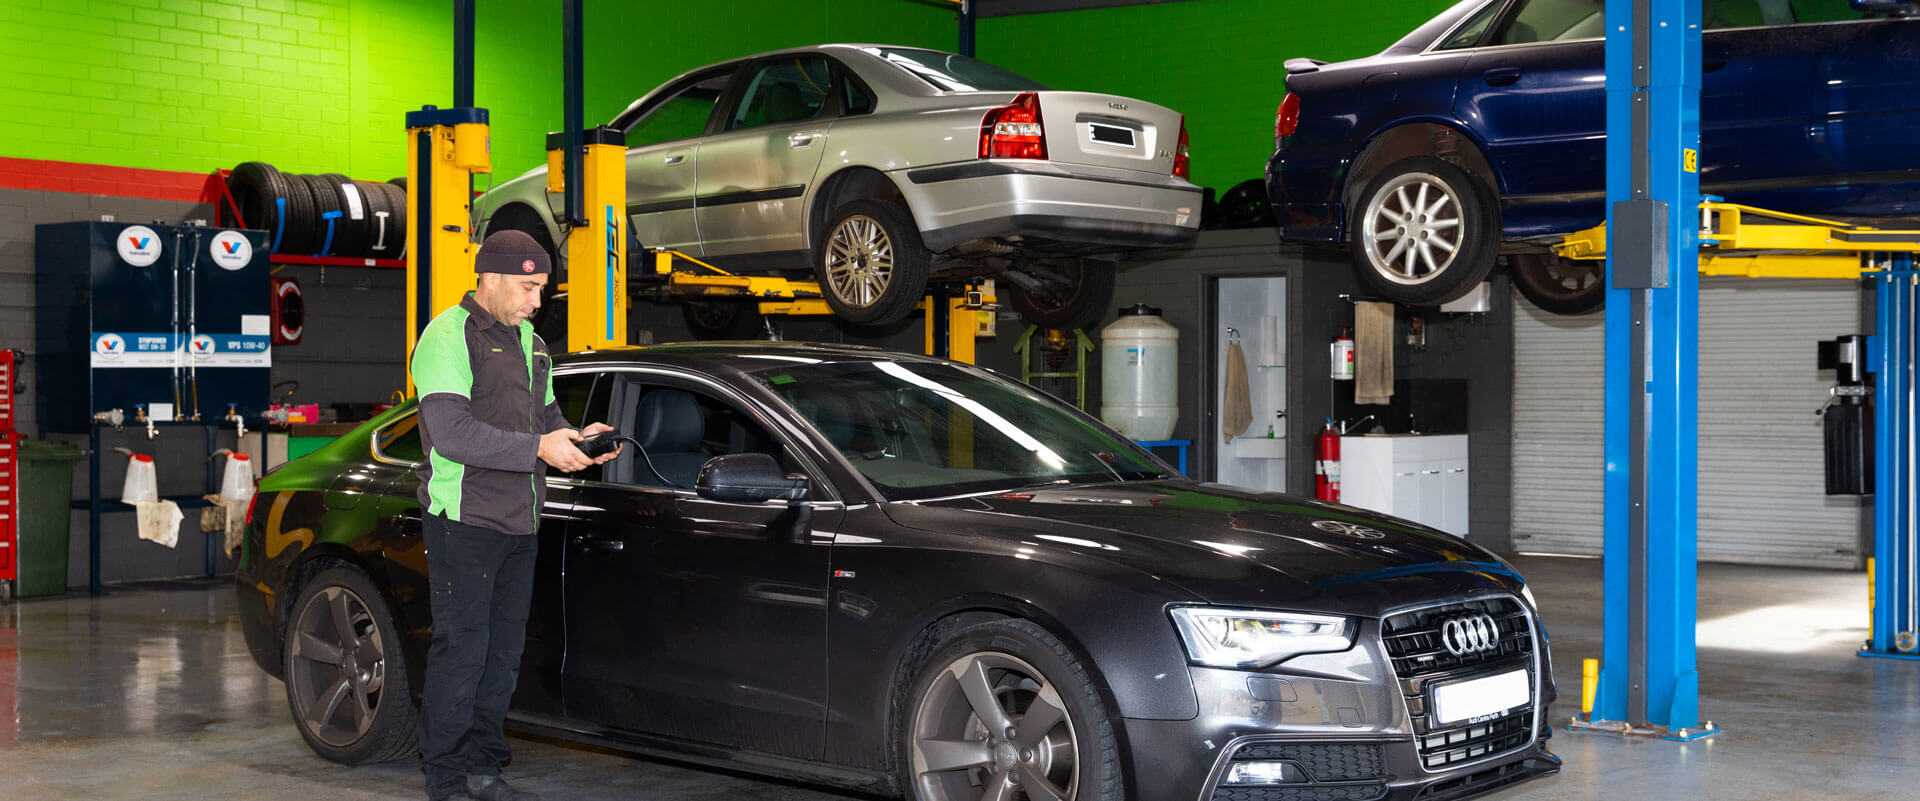 Noranda Service Centre Homepage Image - Mechanic Checking Car with Mechanic Gadget